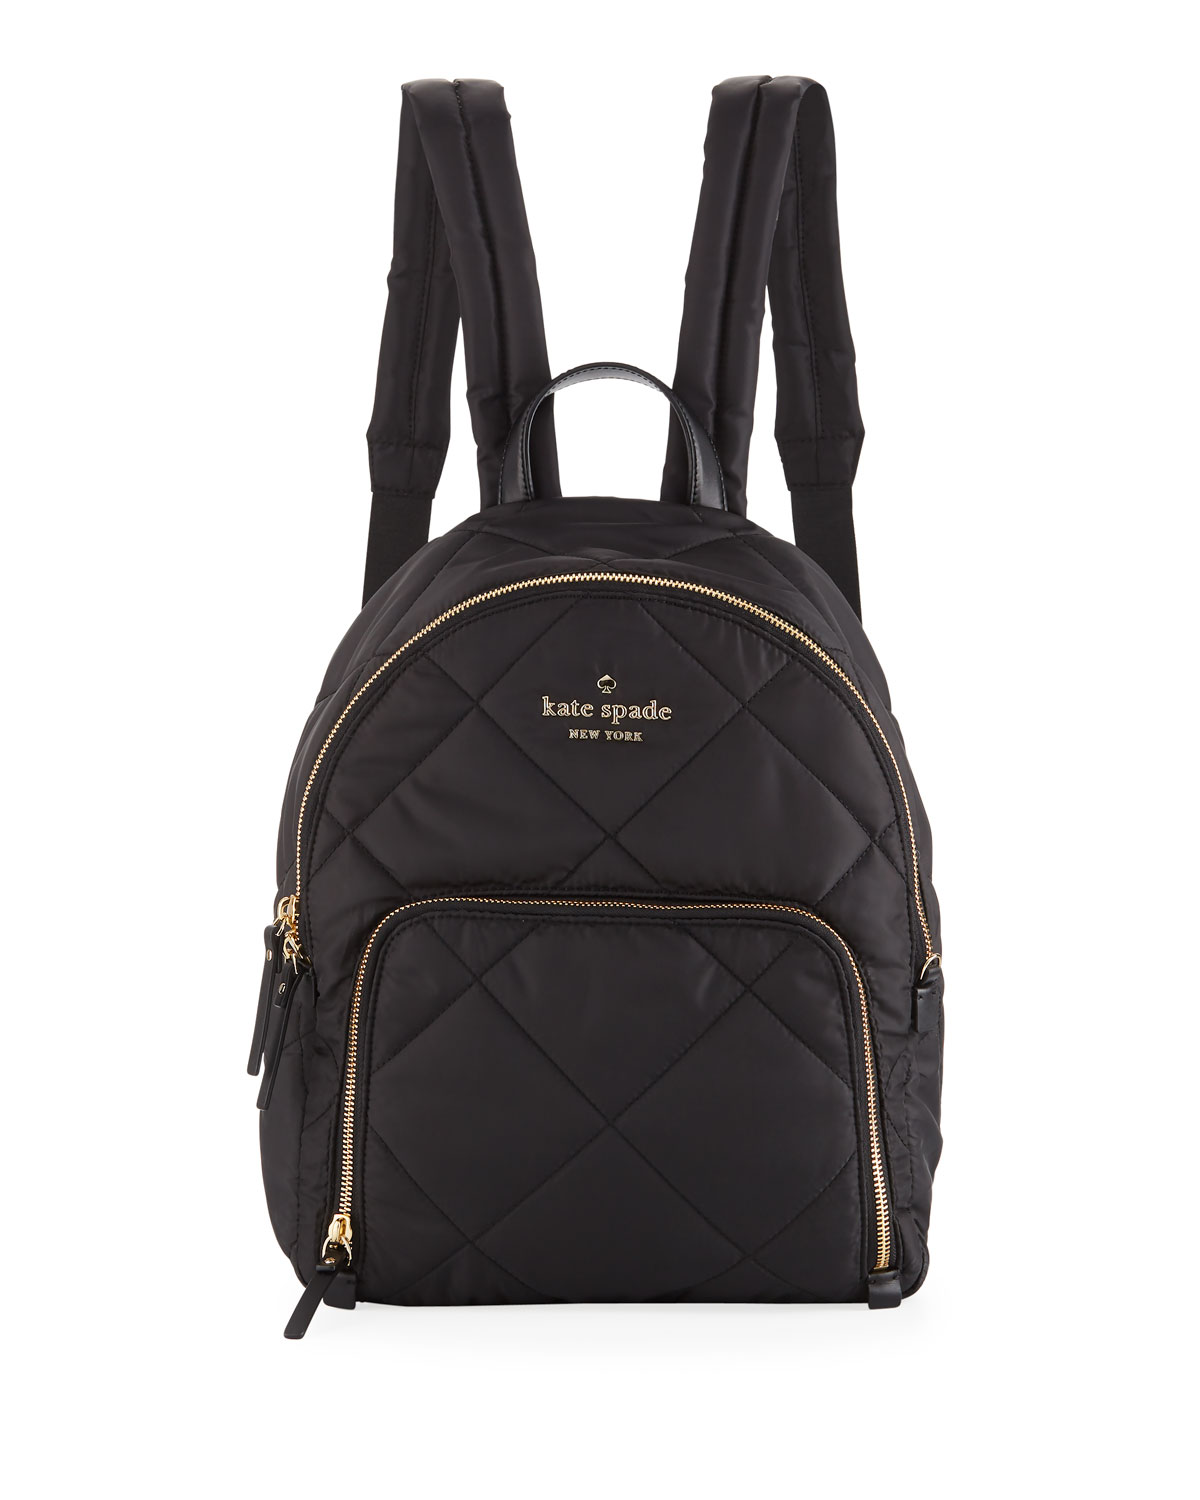 bd1af8e6e6ad kate spade new york watson lane quilted hartley nylon backpack ...